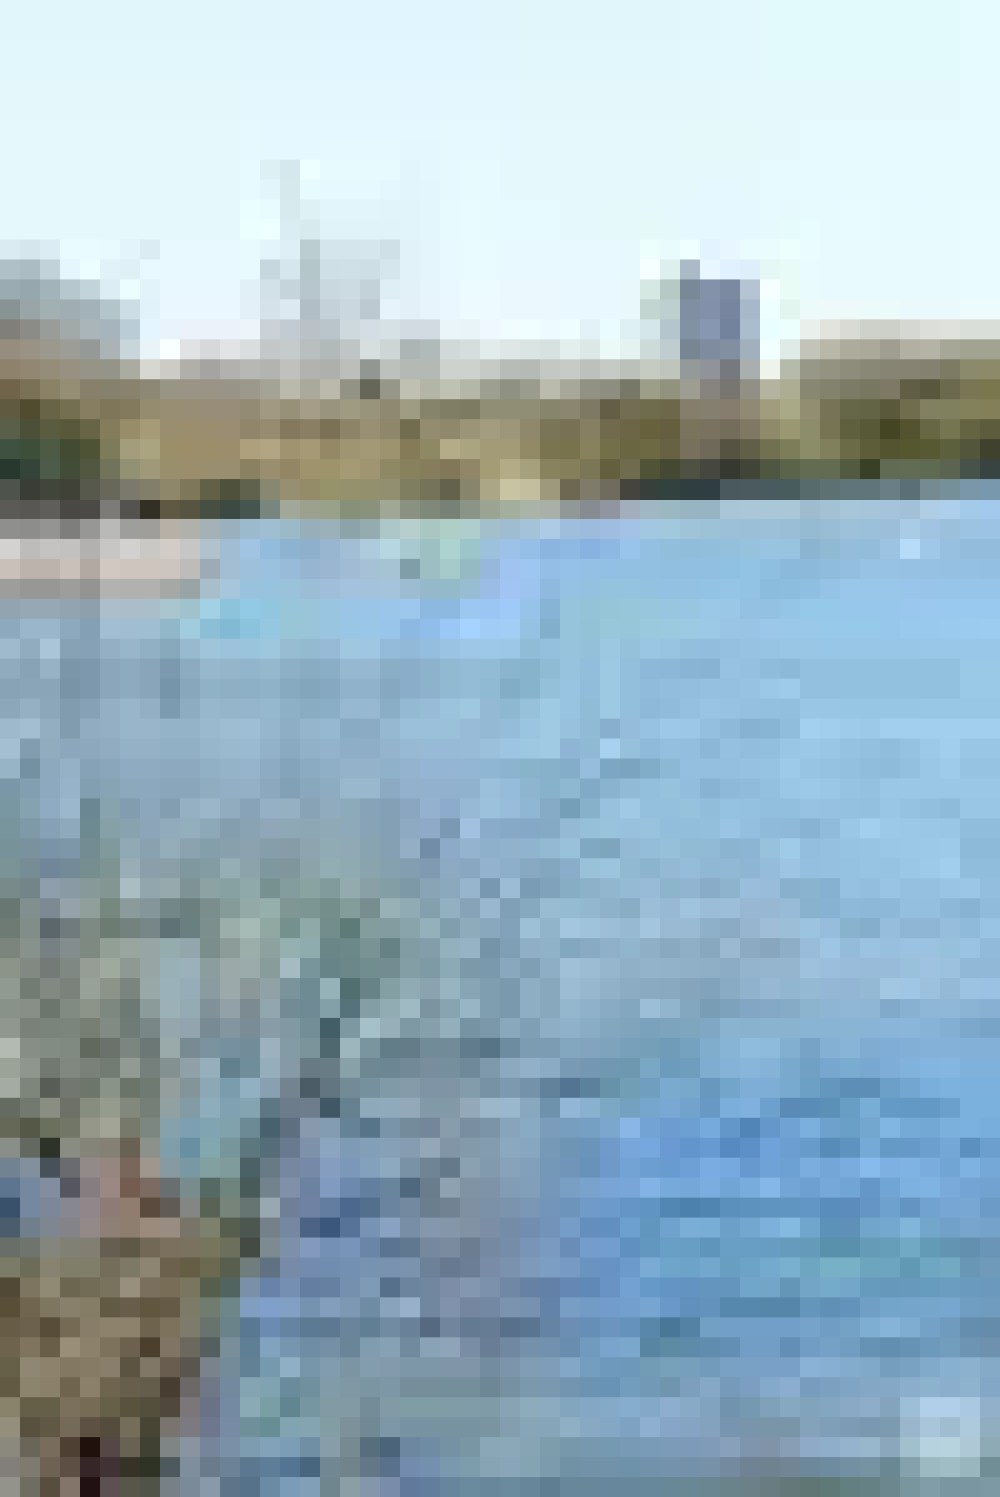 the-chase-nature-reserve-dagenham-essex64